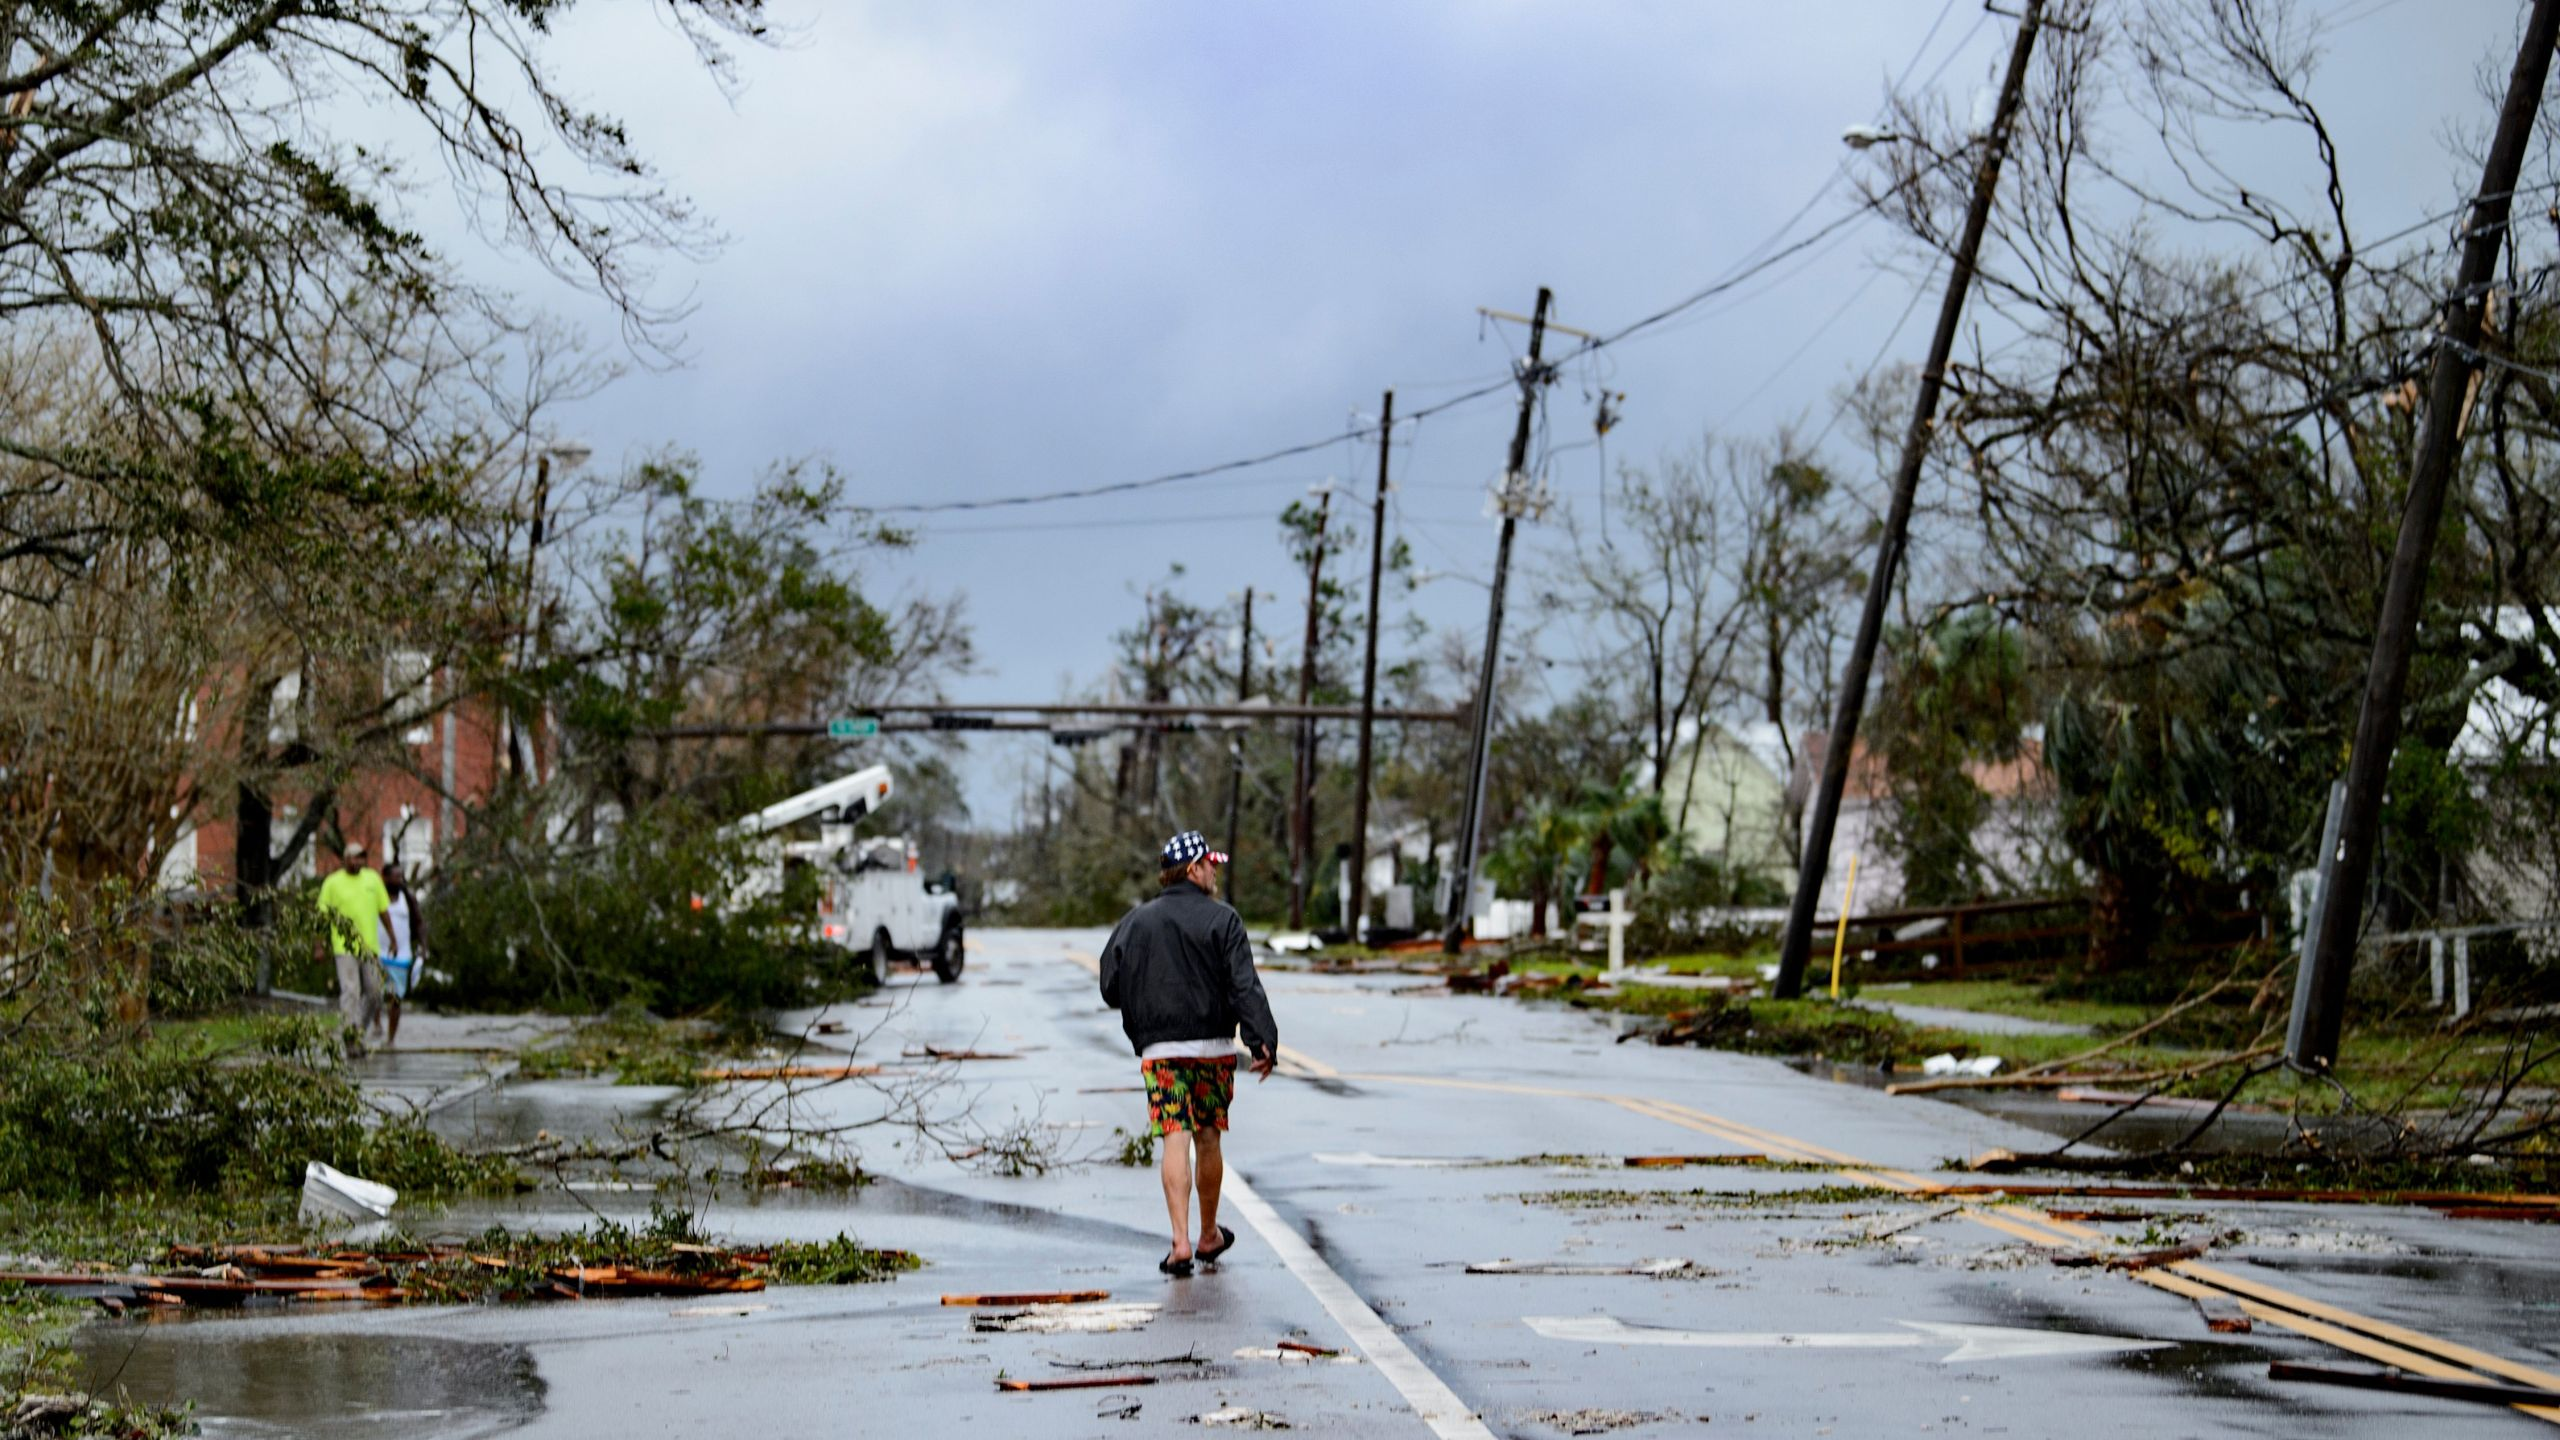 A man walks down the street after Hurricane Michael made landfall on October 10, 2018 in Panama City, Florida. (Credit: BRENDAN SMIALOWSKI/AFP/Getty Images)